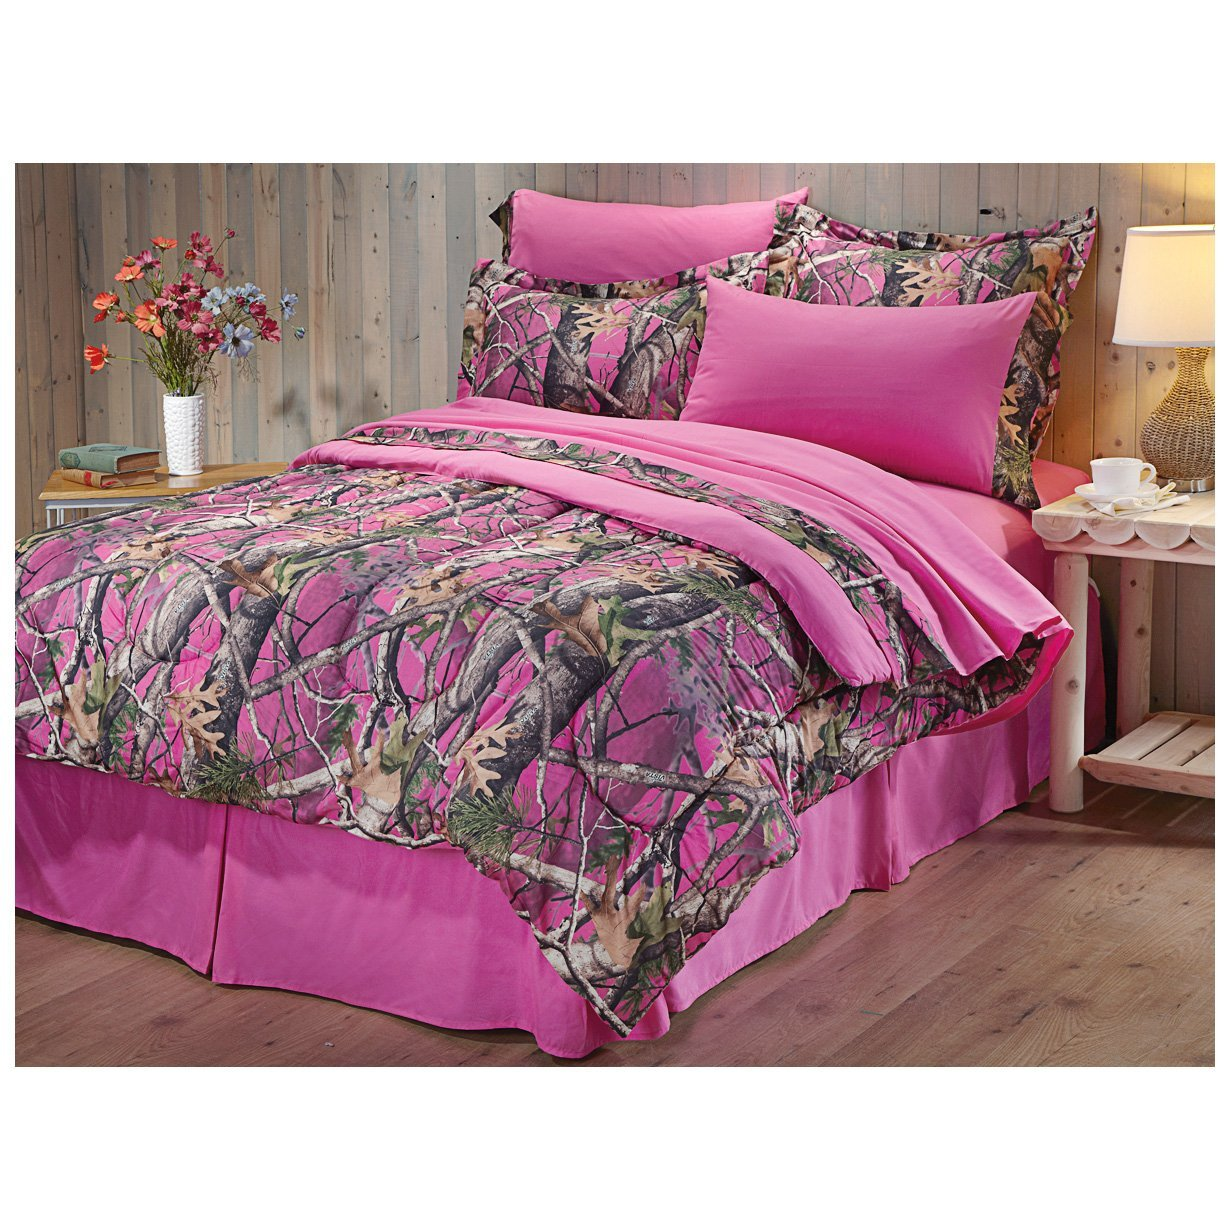 Pink Camo Bedroom Total Fab Pink Camo Camouflage Comforters And Bedding For Girls